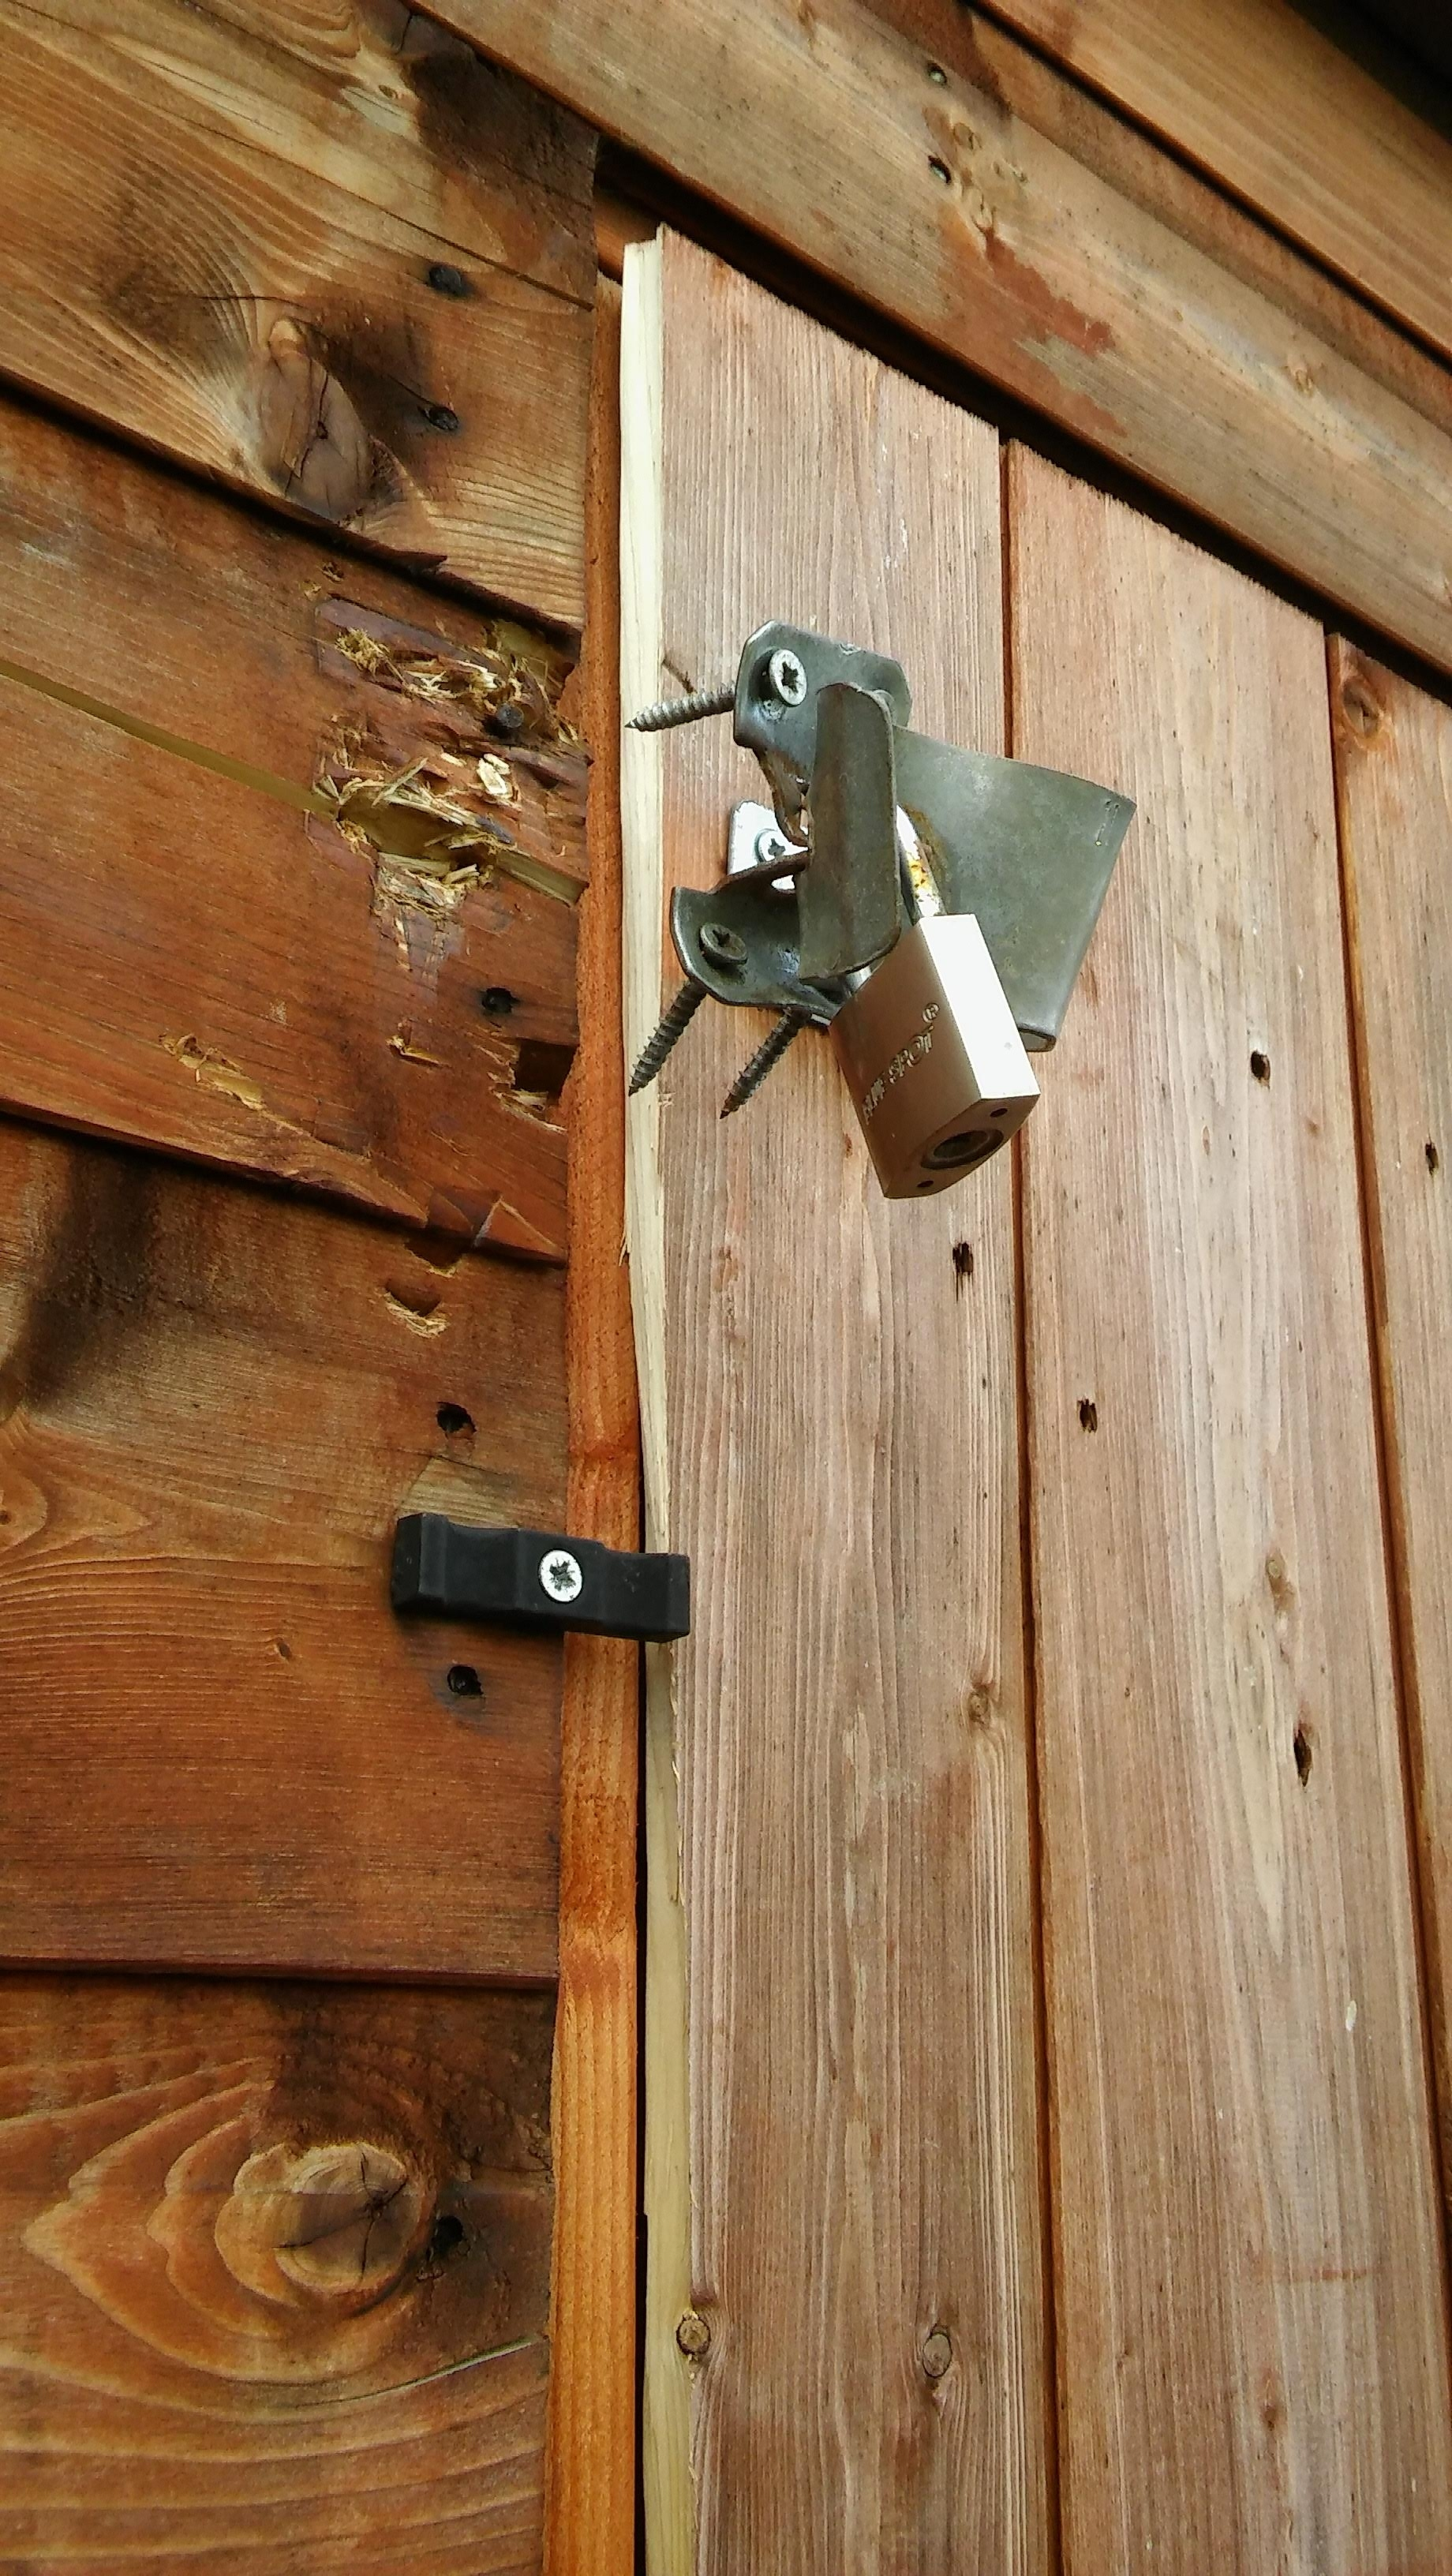 Break-in at Mill Lane allotment sparks safety concerns